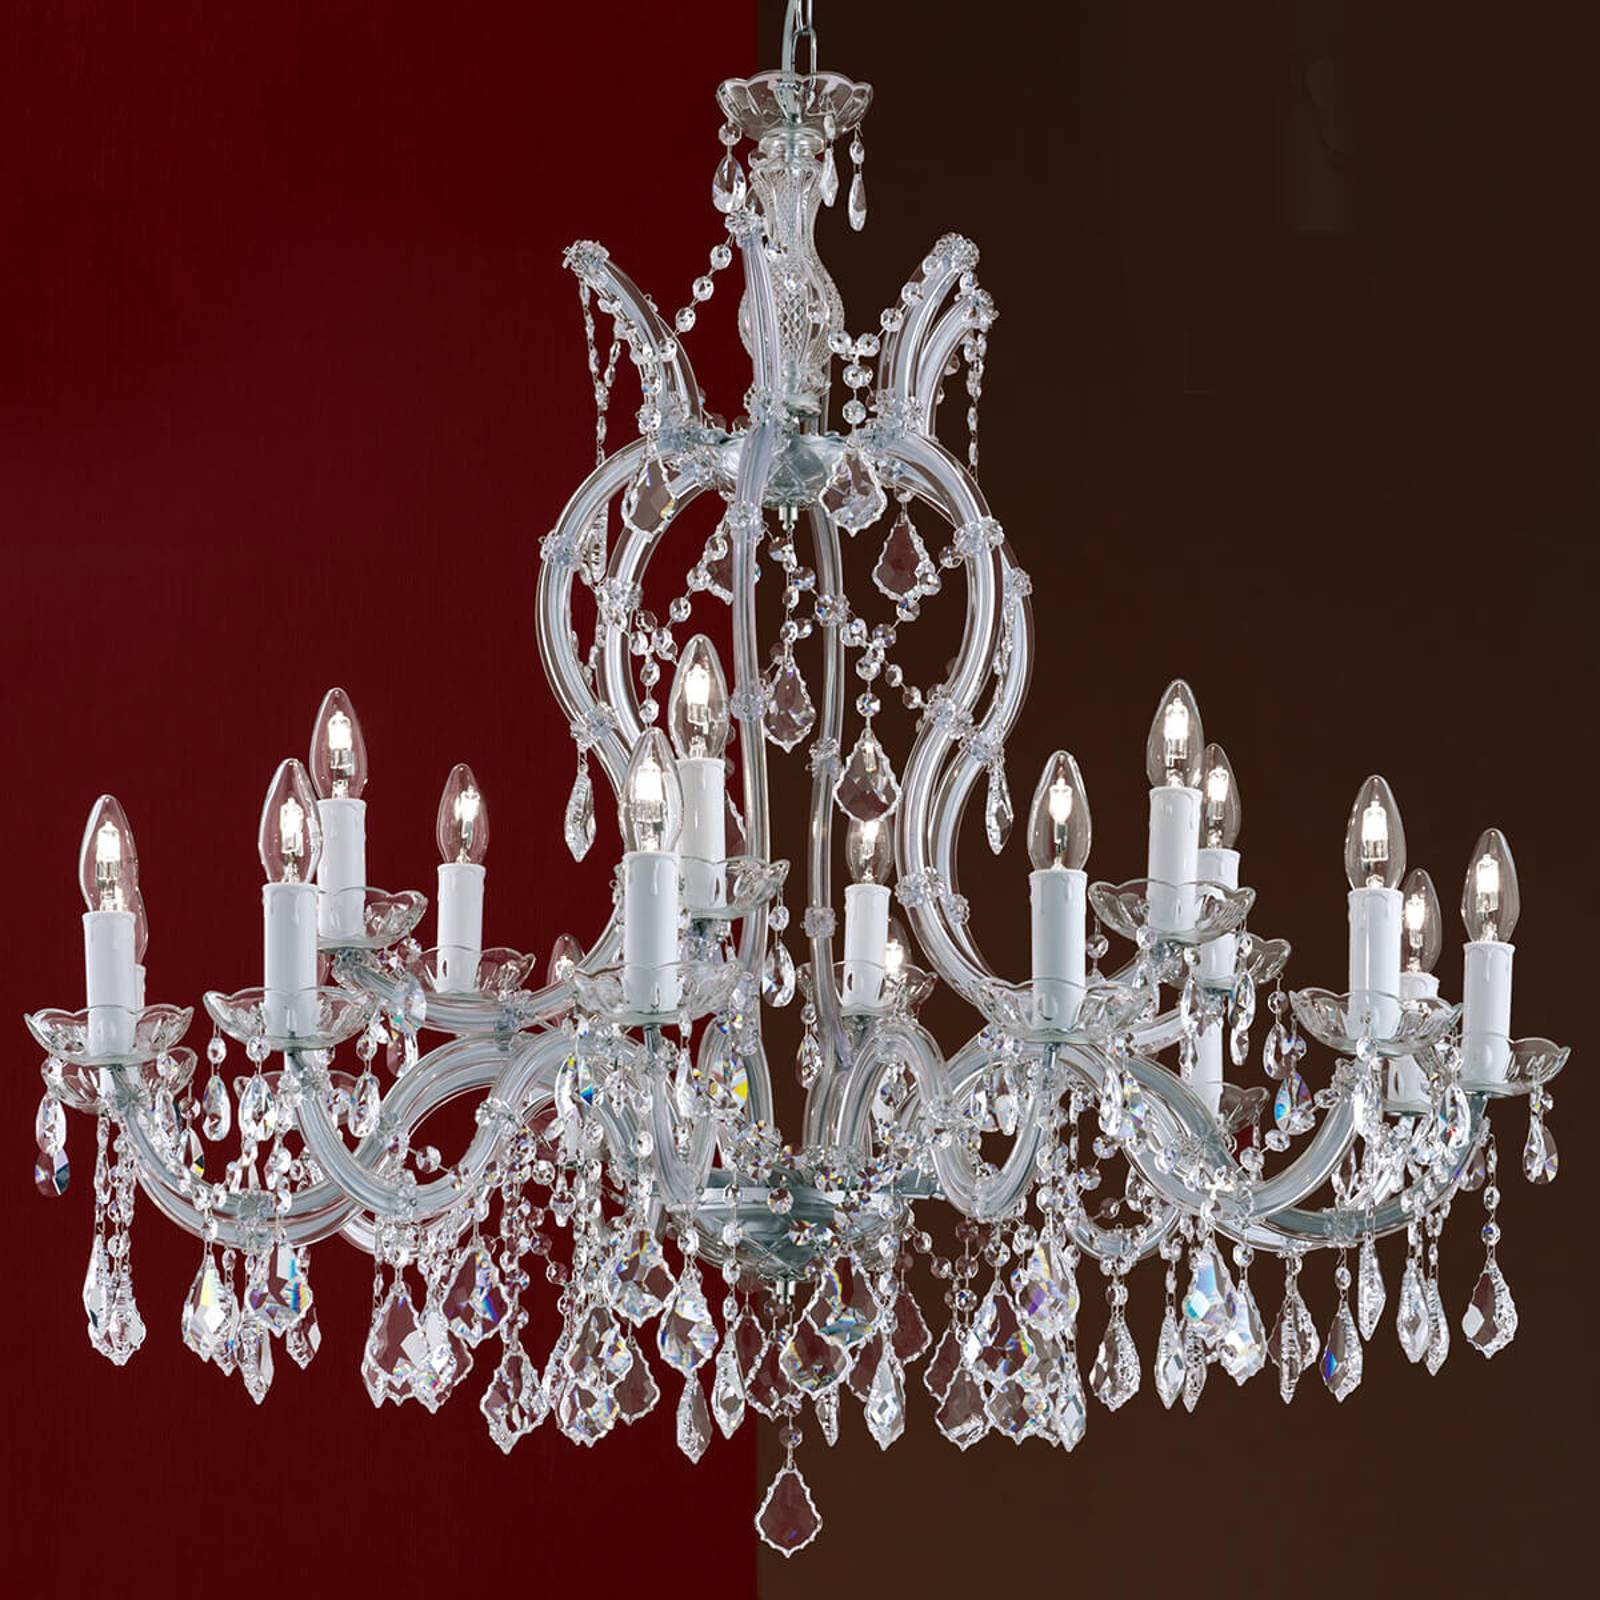 Crystal chandelier Maria Theresia, 18-bulb from Orion